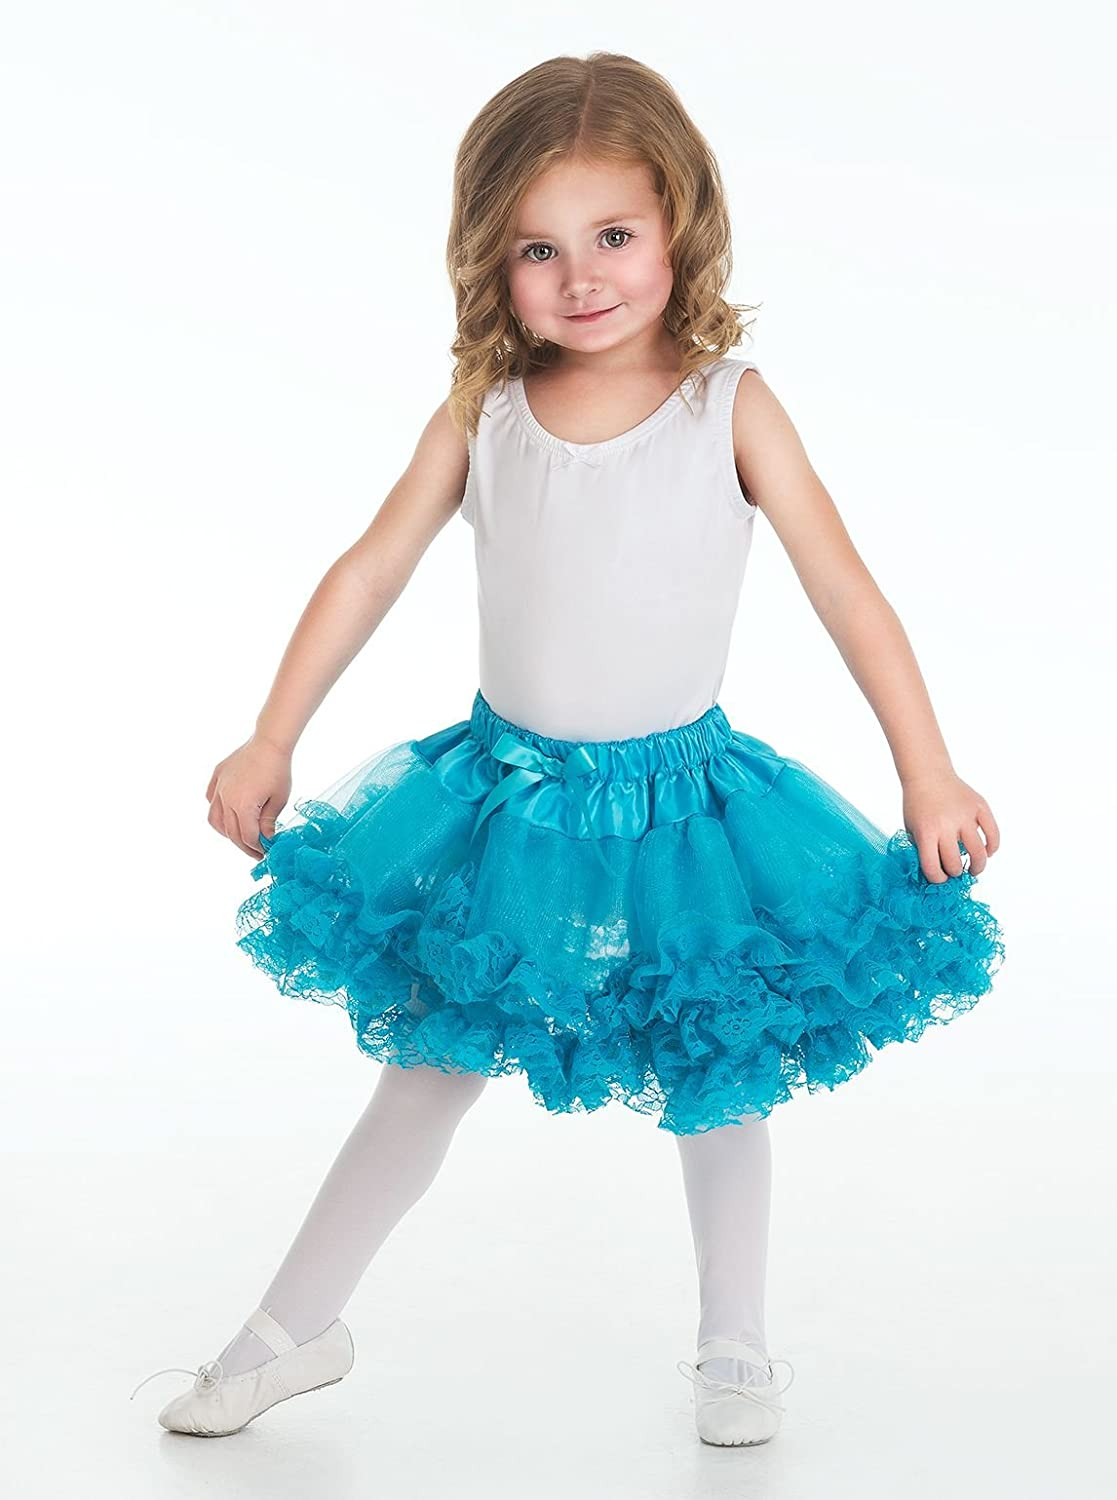 Teal Lace Tutu Medium ages 3-8 by Little Adventures